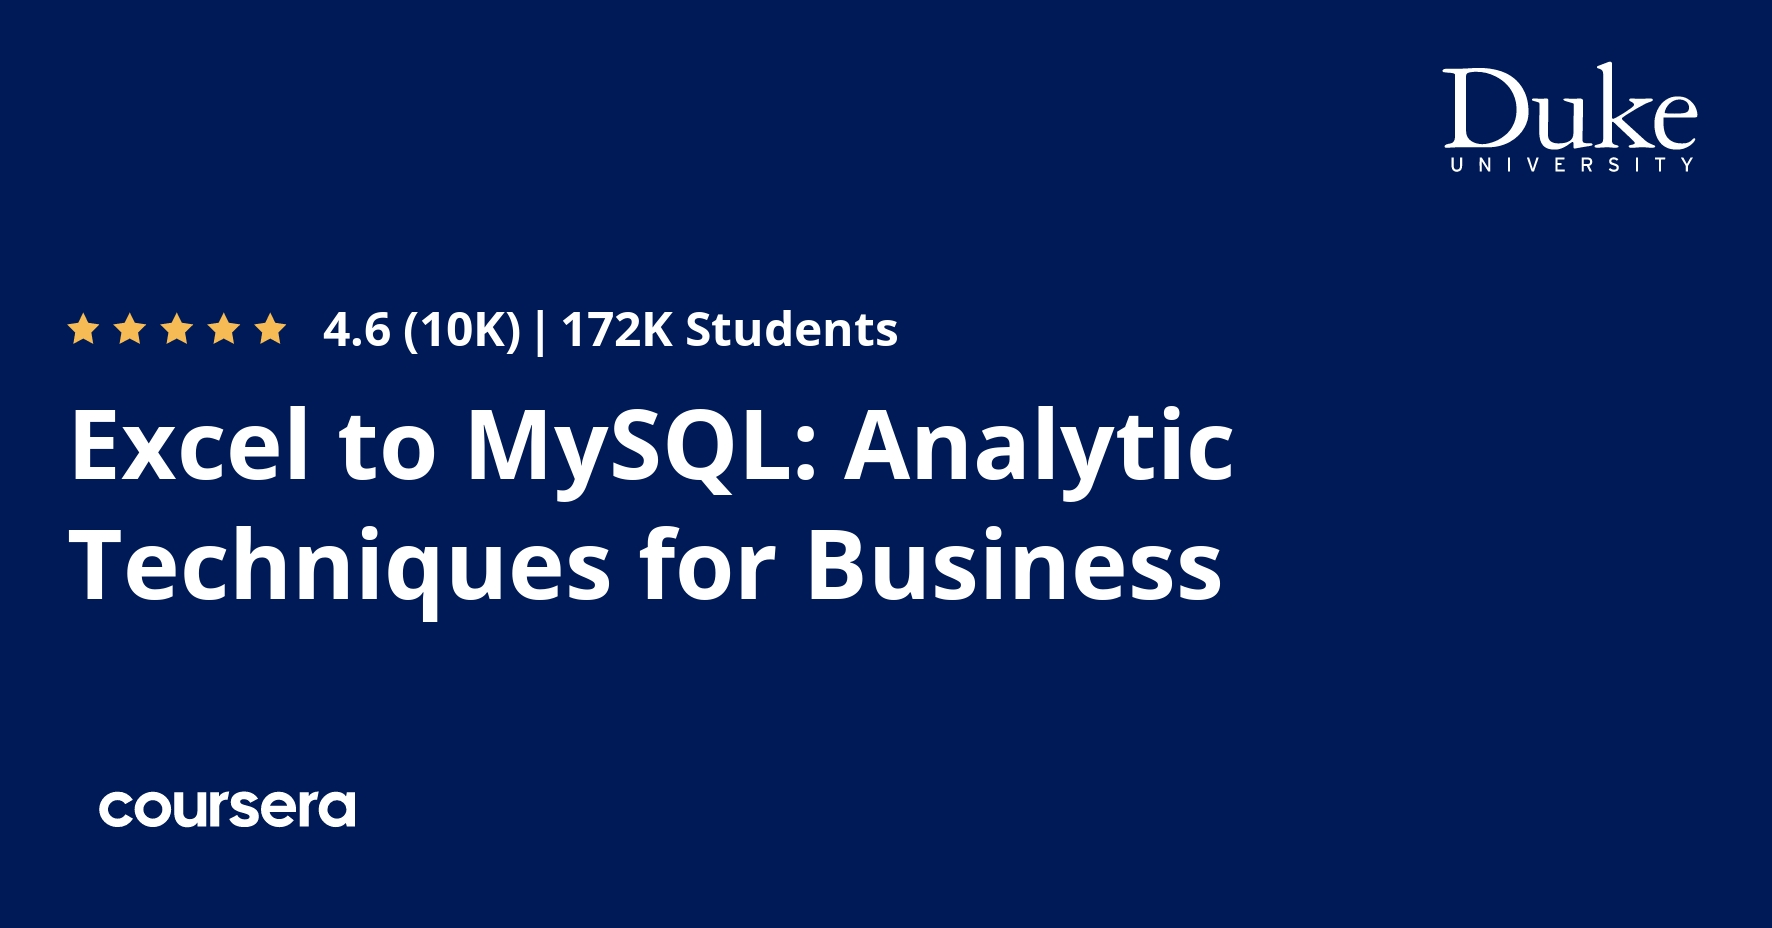 Excel to MySQL: Analytic Techniques for Business Specialization